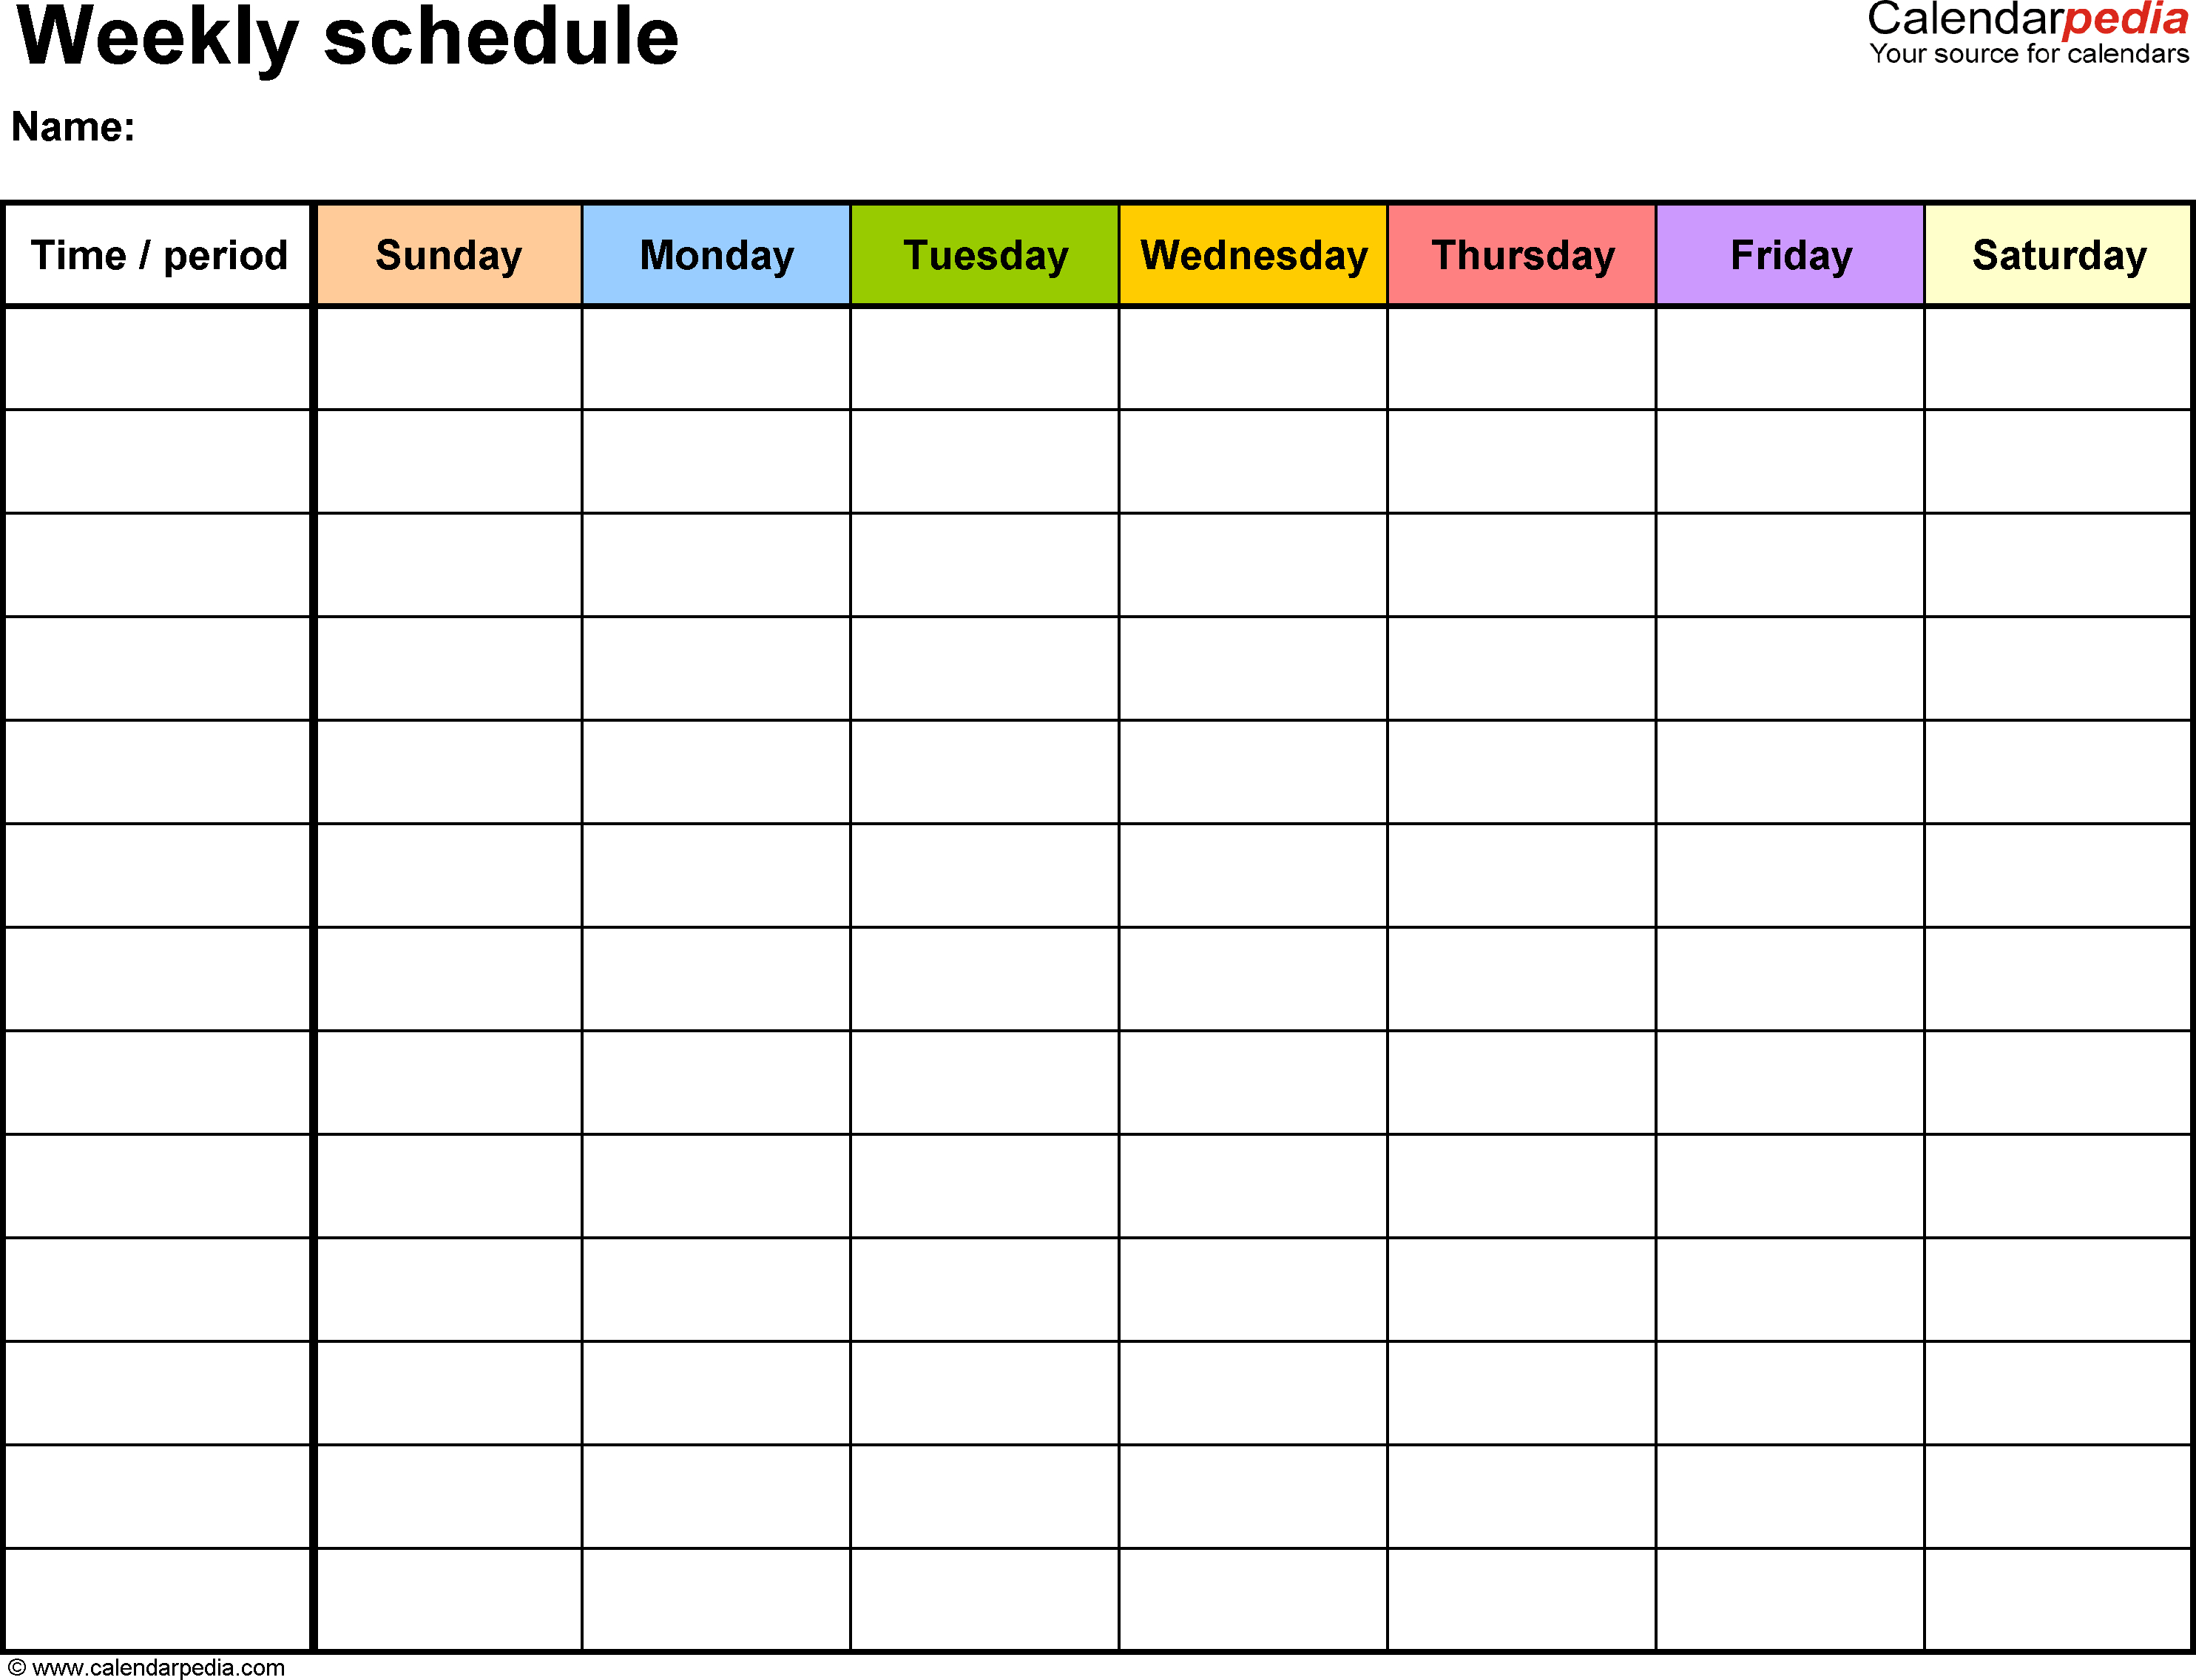 Free Weekly Schedule Templates For Excel - 18 Templates Saturday To Friday Weekly Calendar